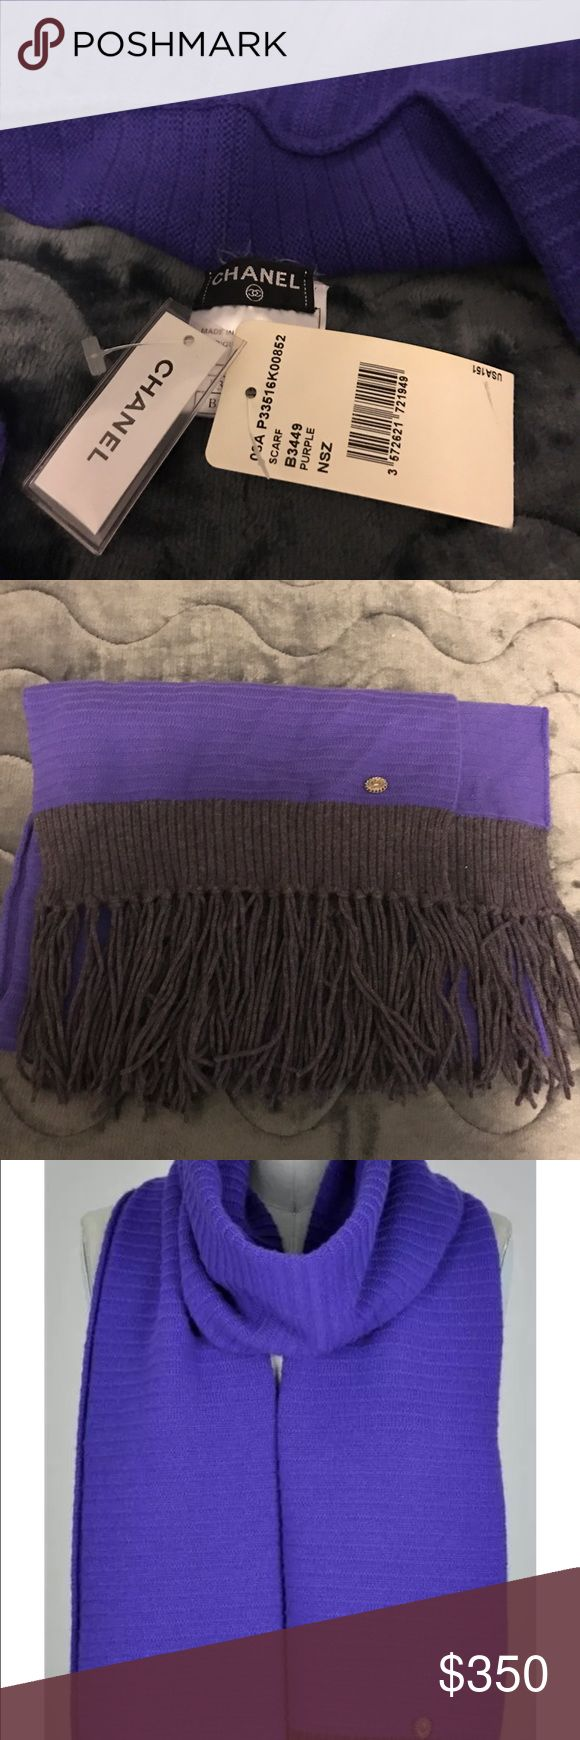 Pre Fall 2007 Paris Collection Cashmere Scarf This shawl is brand new with tags and in flawless condition. It is a gorgeous piece with beautiful detailing. Great timeless addition to your wardrobe.  Scarf/Shawl is 78 inches X 13 inches CHANEL Accessories Scarves & Wraps